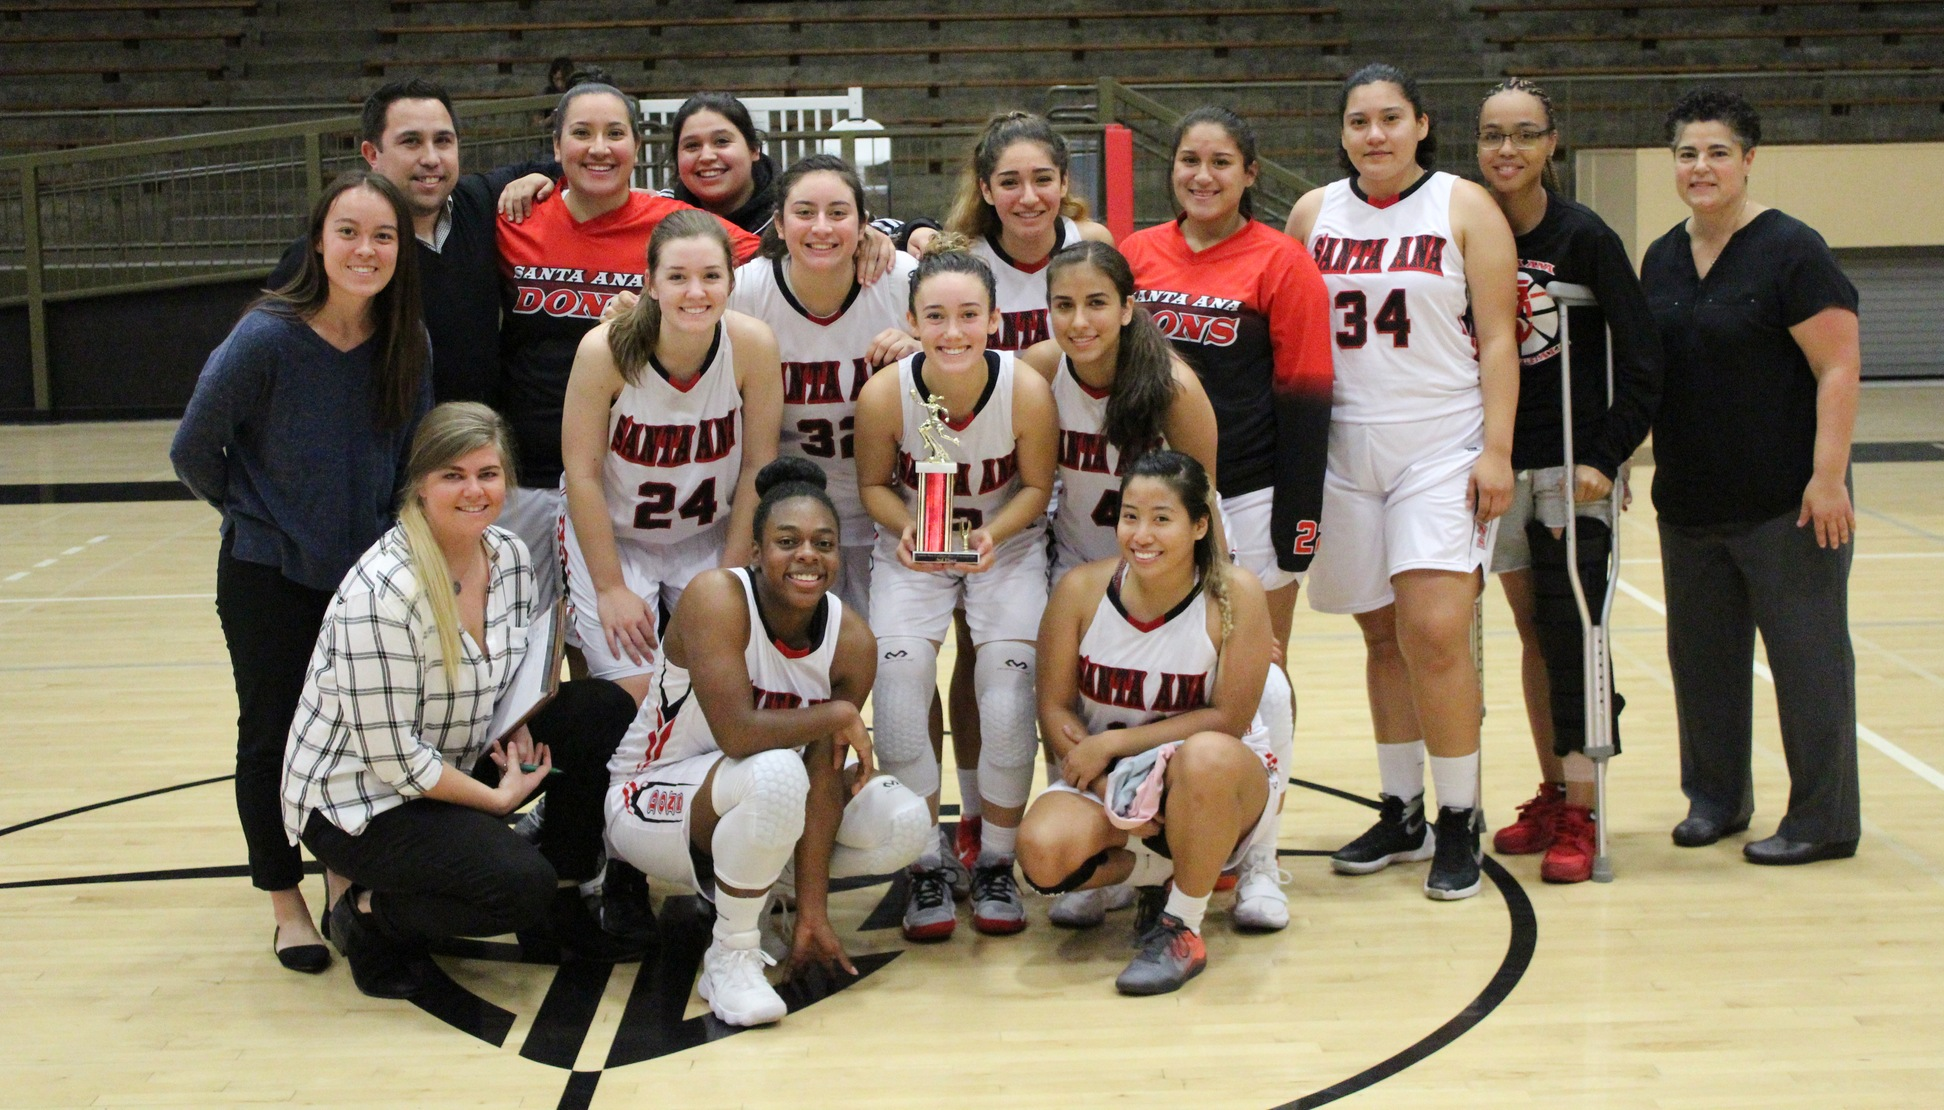 Dons Claim Third in Tournament with a 77-59 Win Over Bakersfield